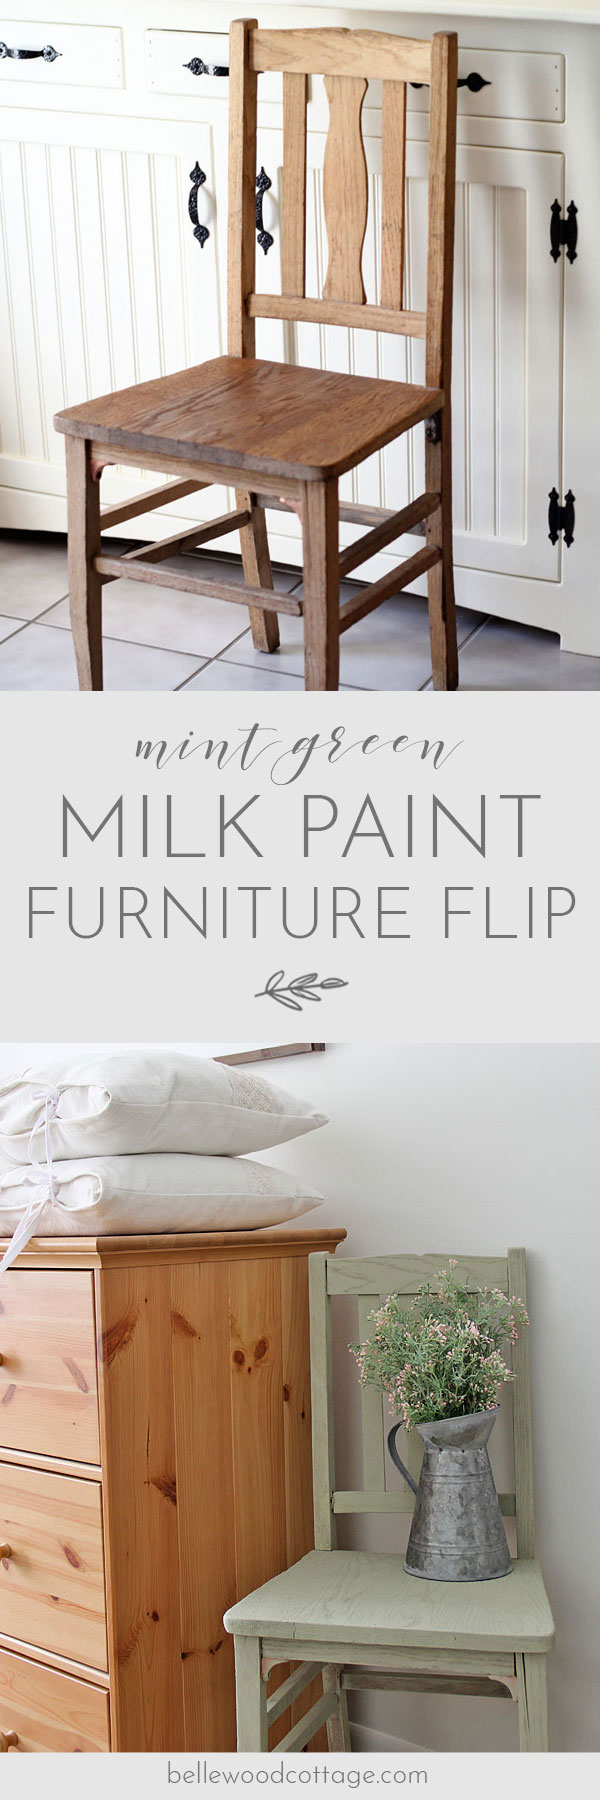 Learn how I used mint green milk paint to give this antique chair new life. A hour or two, some milk paint powder, and a paintbrush is almost all you'll need! #BellewoodCottage #milkpaint #furnitureflip